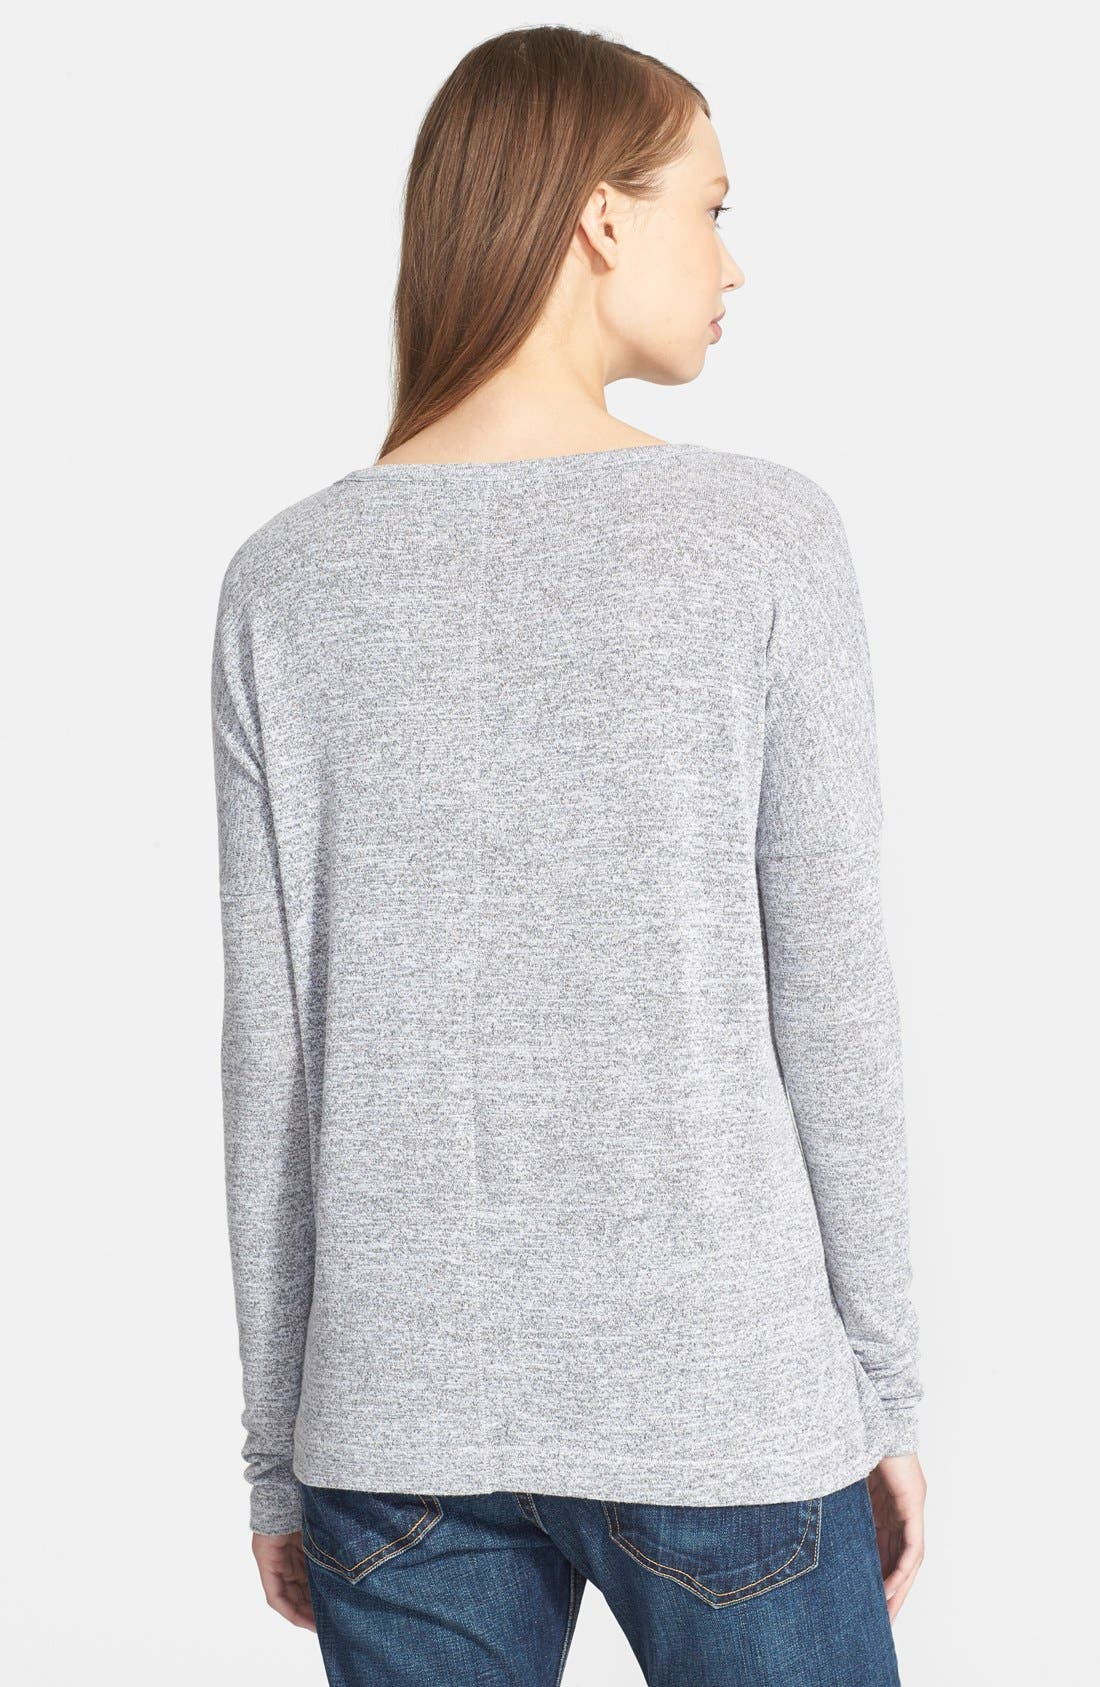 Alternate Image 2  - rag & bone/JEAN Long Sleeve Tee (Nordstrom Exclusive)